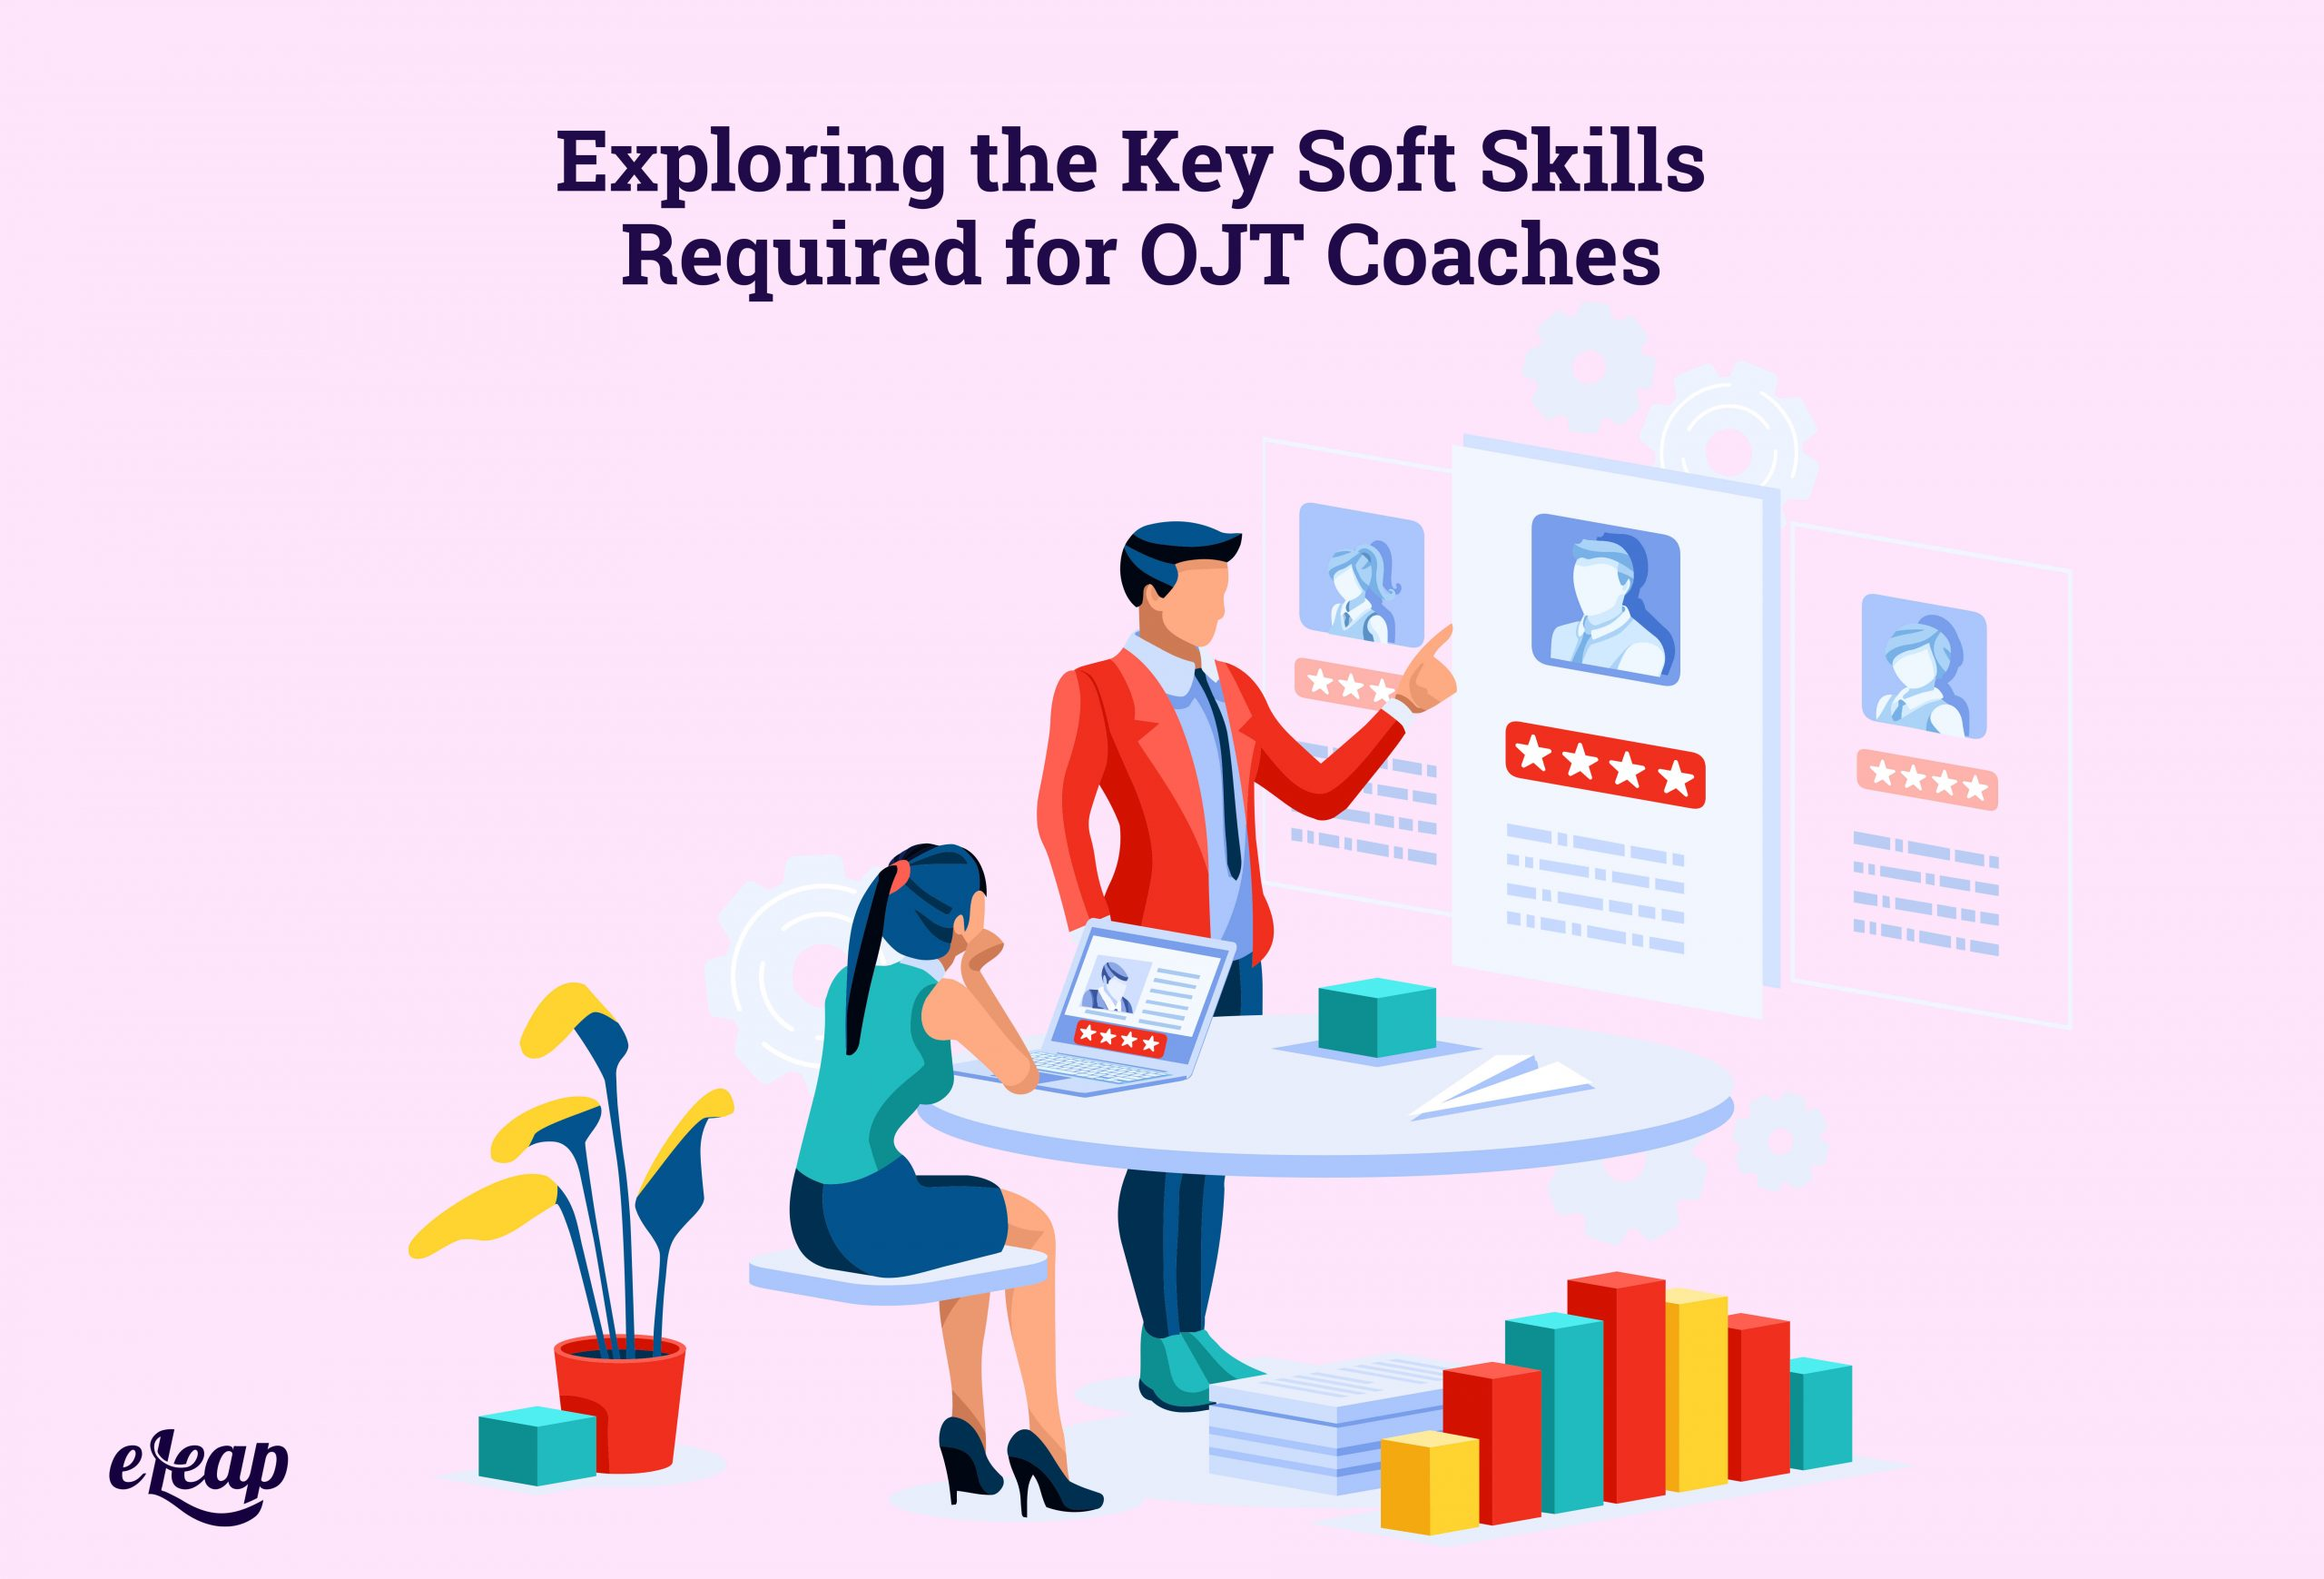 Exploring the Key Soft Skills Required for OJT Coaches